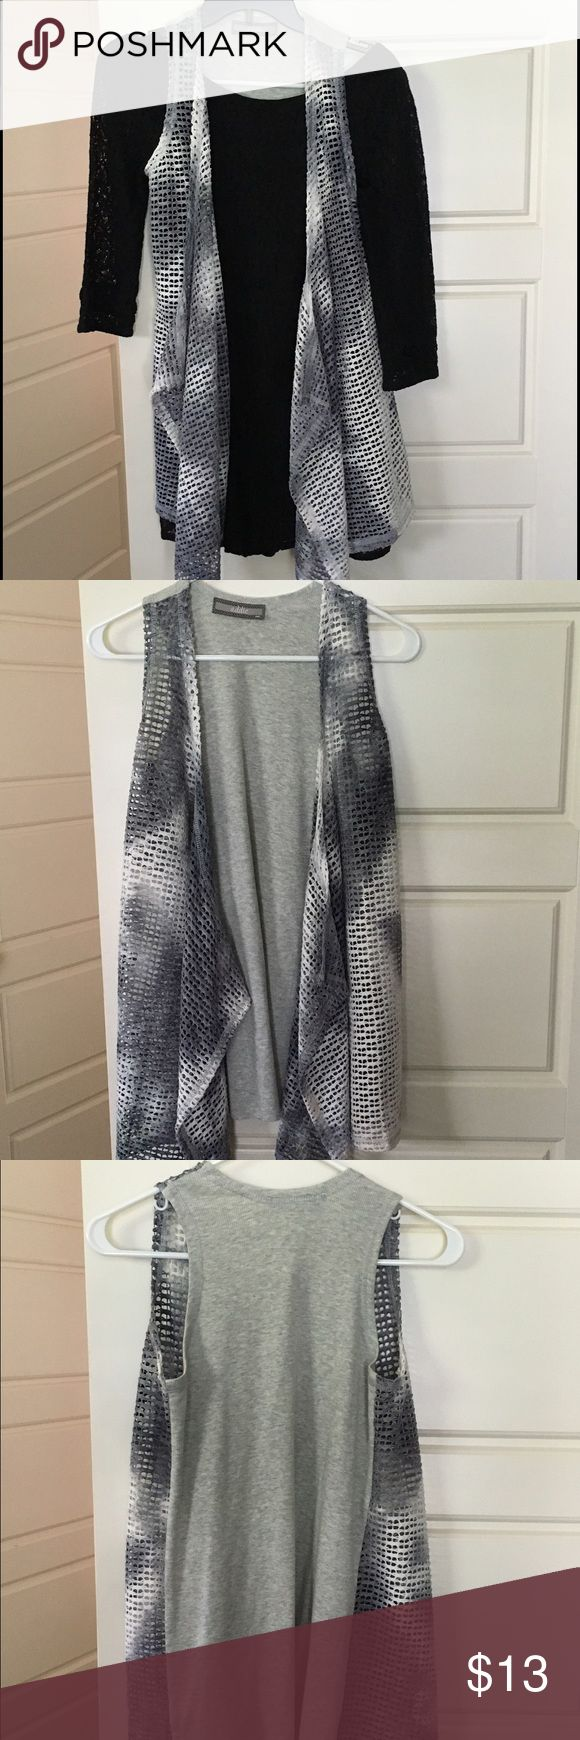 Multi color Vest Unique grey and white dress. Can be worn to dress up a nice outfit (pic 1) or casually with a cotton shirt (pic 4). No signs of damage or wear. Great layering piece for the fall and winter! Jackets & Coats Vests